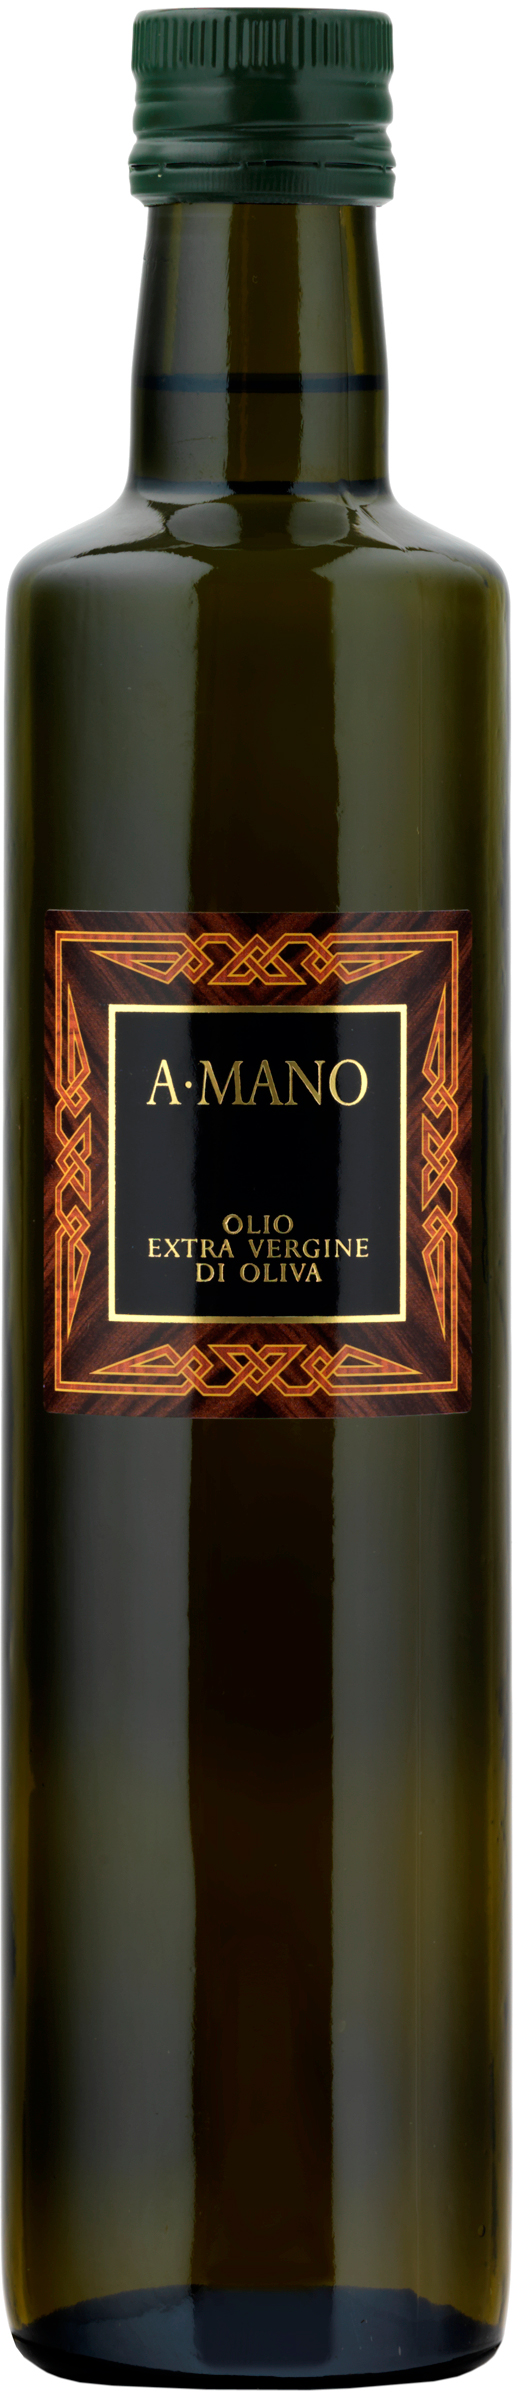 A Mano, Extra Virgin Olive Oil 2015